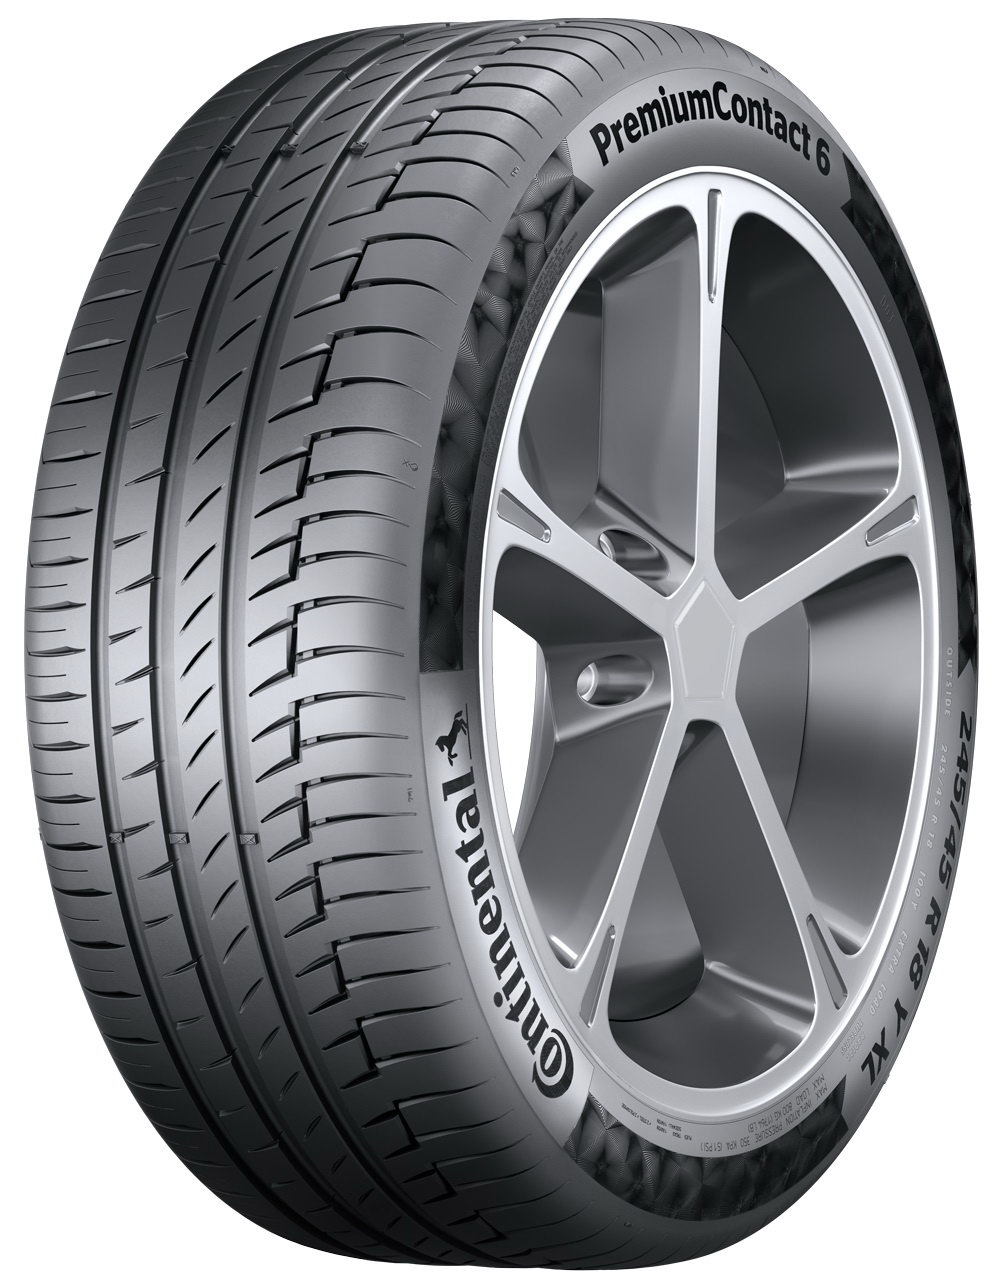 Anvelope vara CONTINENTAL PREMIUM CONTACT 6 245/40 R18 97Y